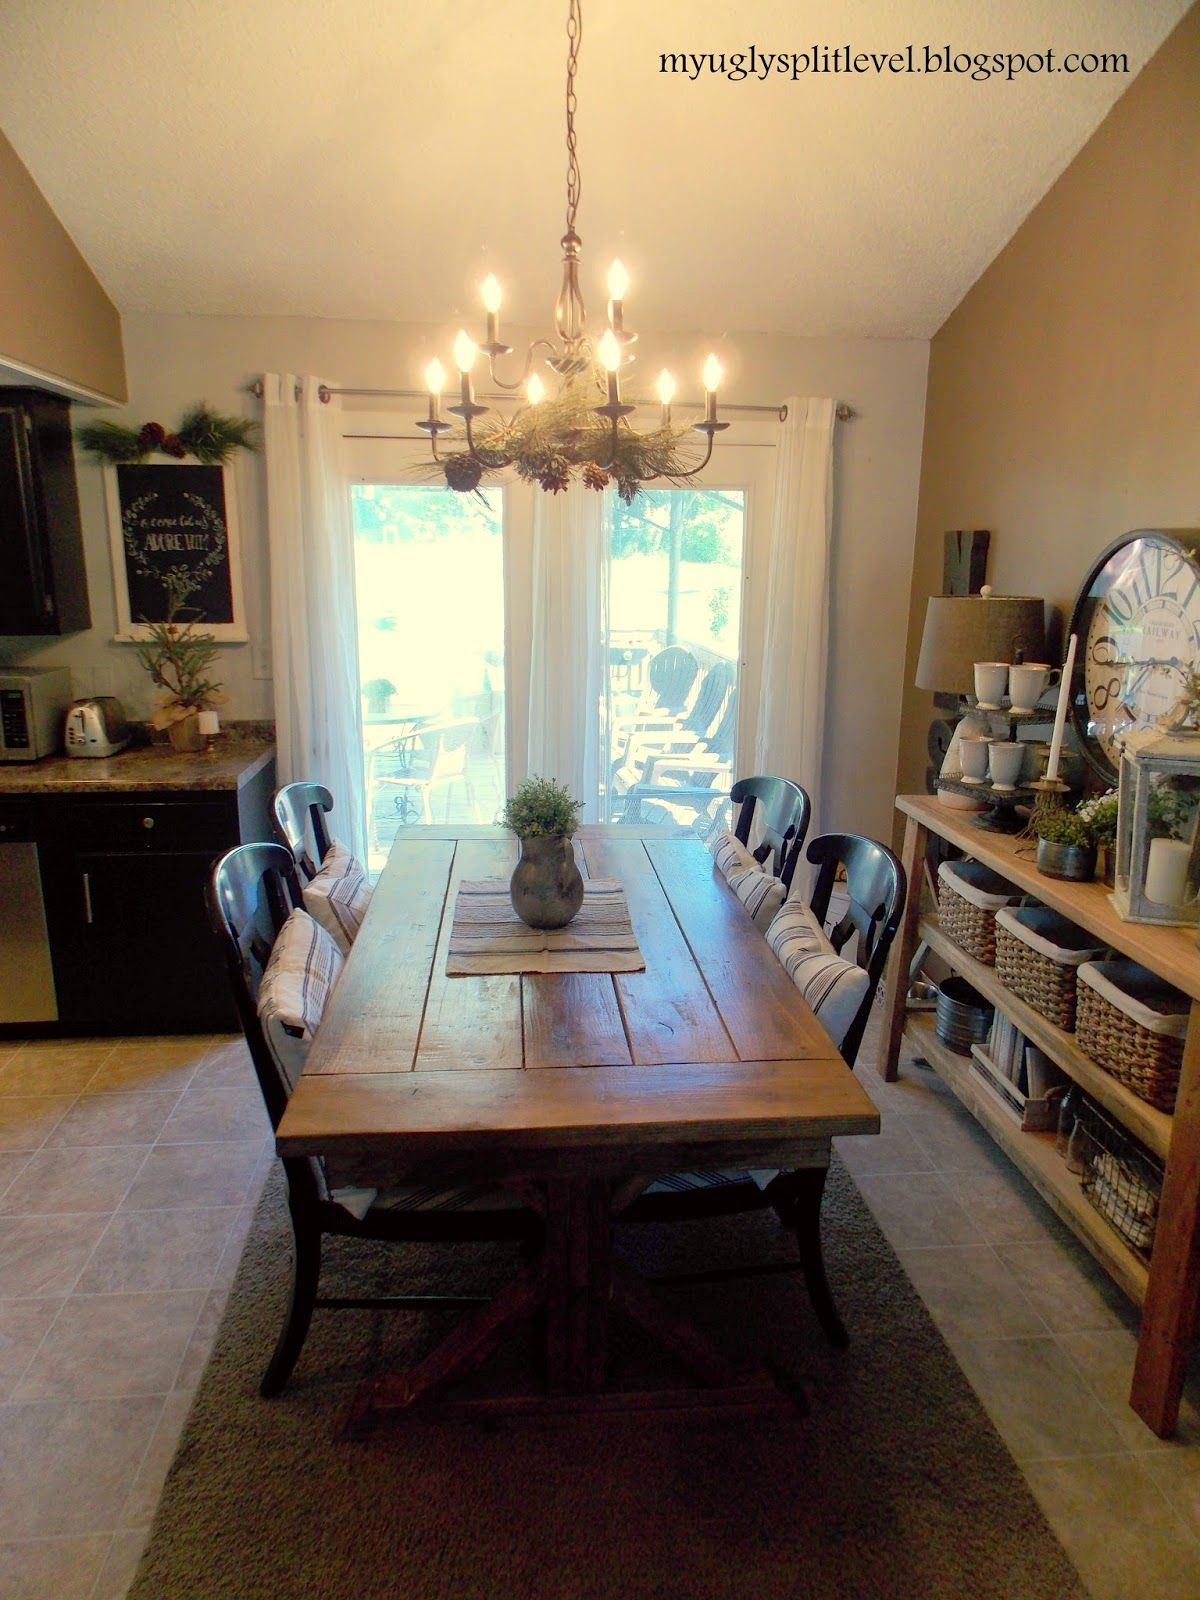 My Ugly Split-level: Dining Room. Finally. | Dining room ideas ...